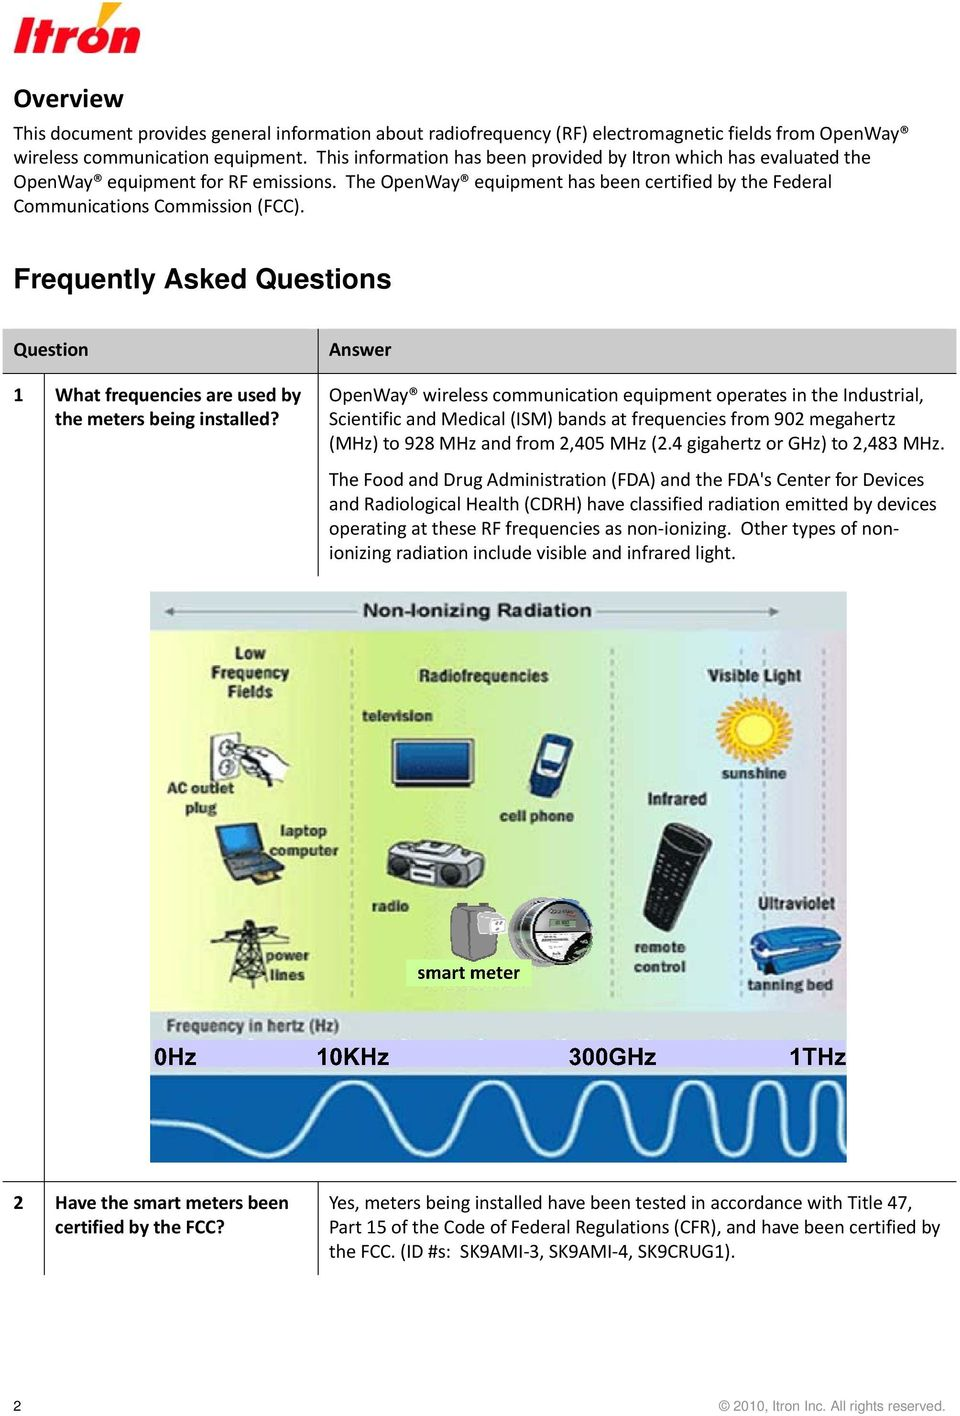 Frequently Asked Questions Question 1 What frequencies are used by the meters being installed?